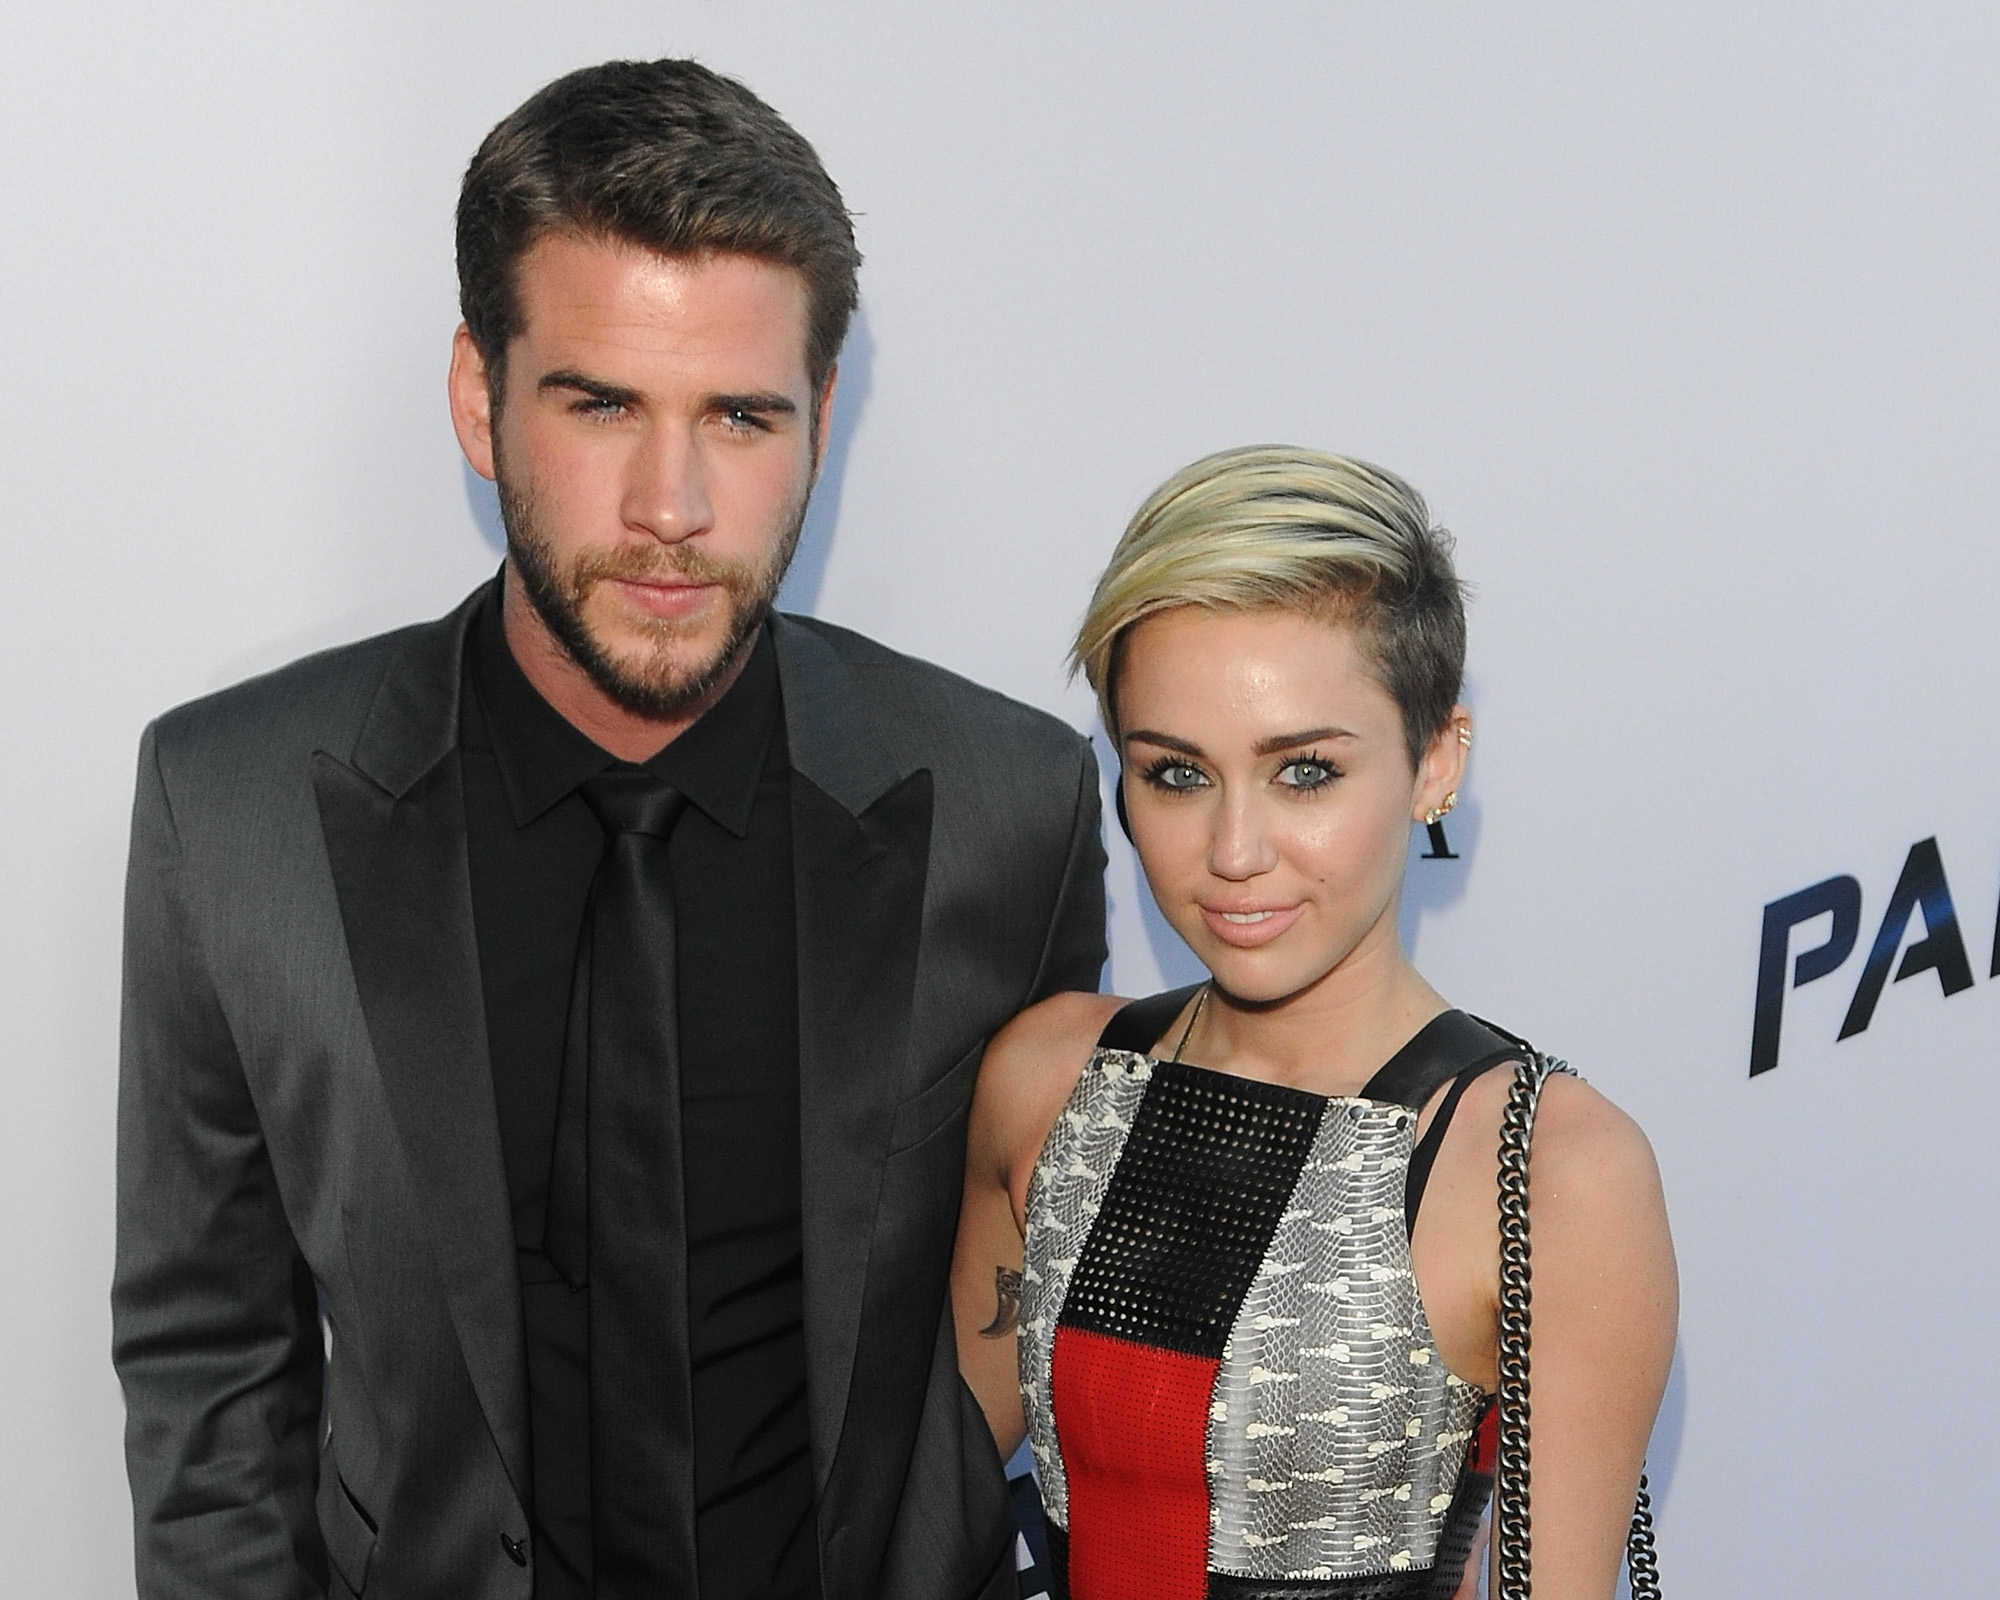 Together liam miley and Miley Cyrus'